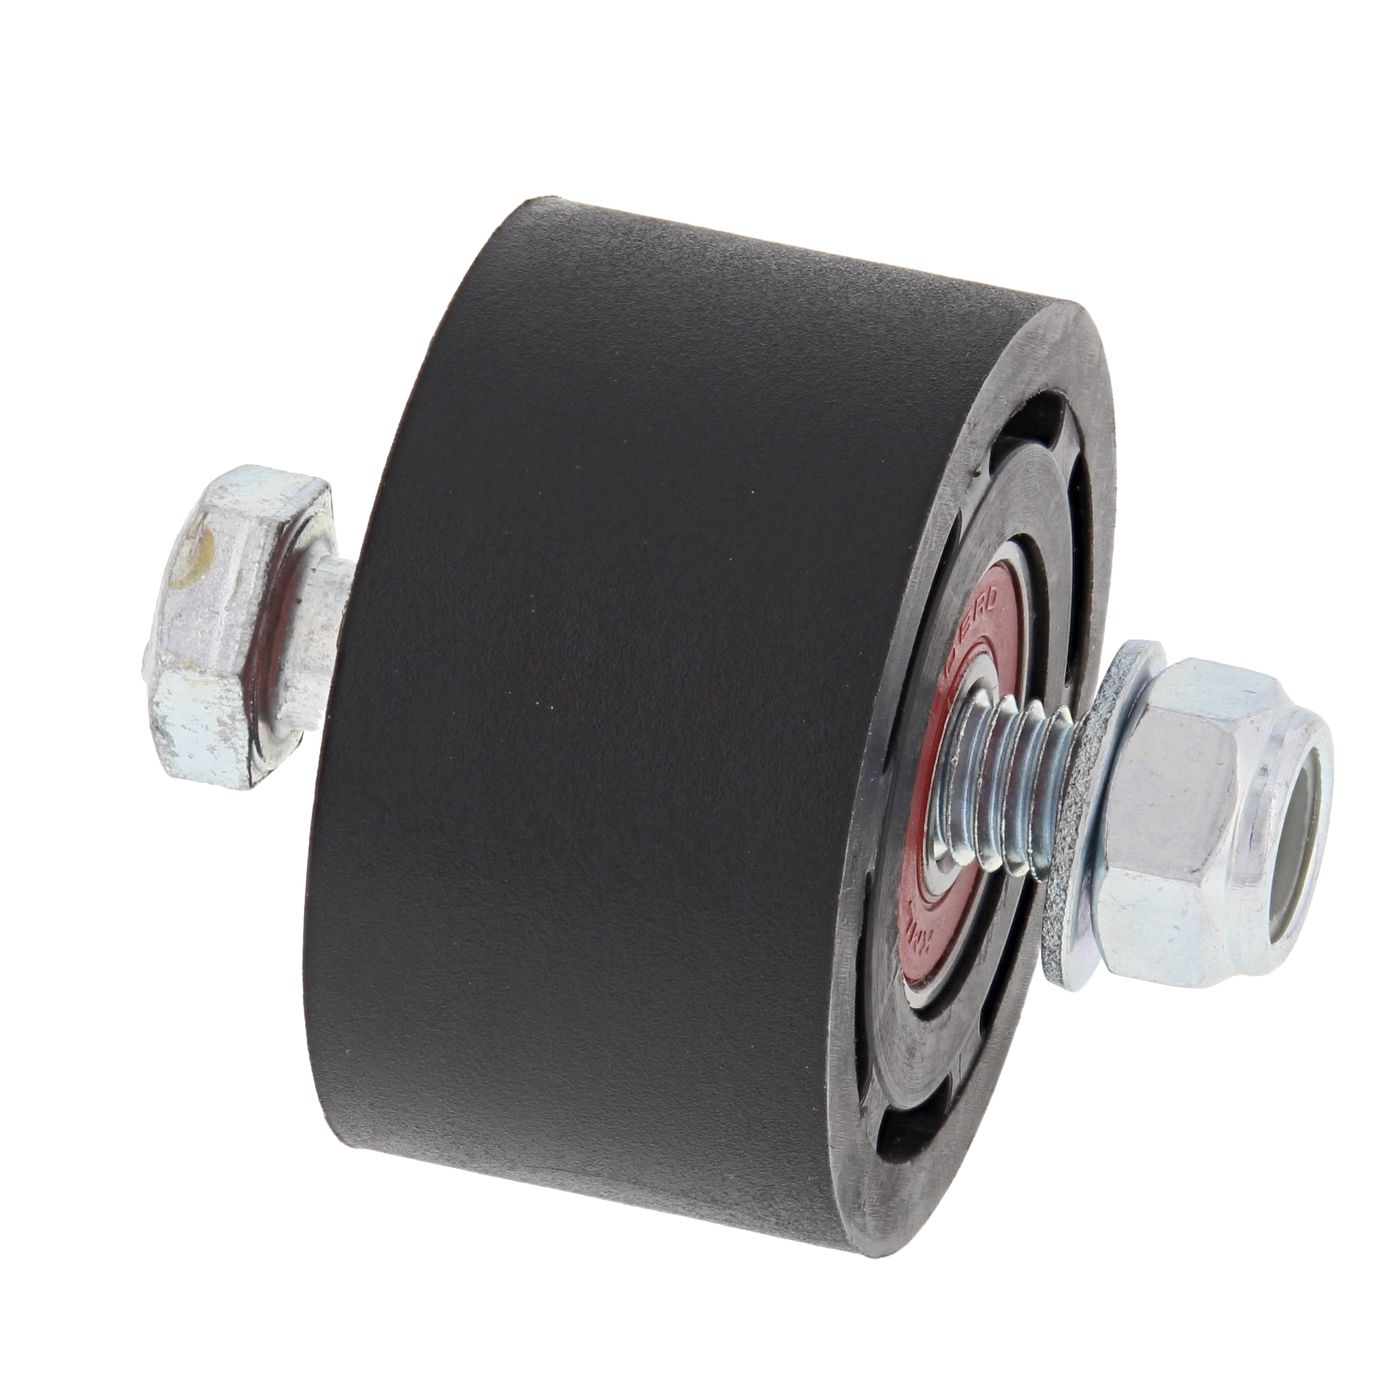 Wrp Chain Rollers - WRP795007 image